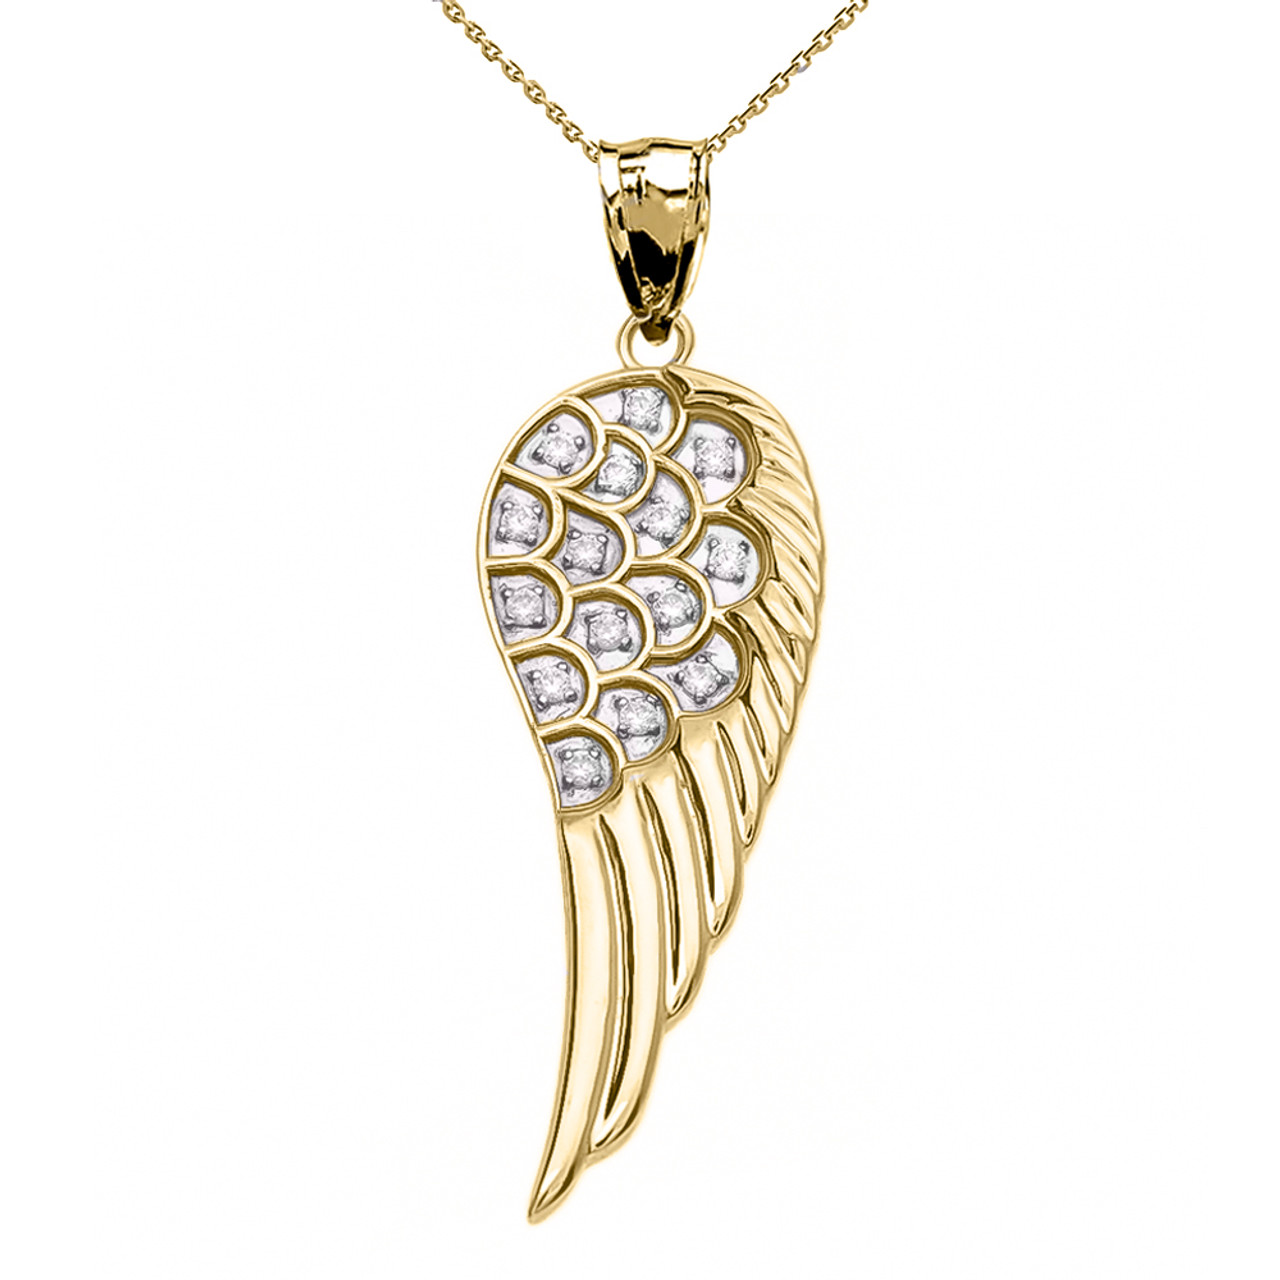 rhodium wings negozio stones or luxanty collana gold en argento d with rose silver white plated in angel necklace con pendant bianco pietre wire ali wing zircons zirconi filo